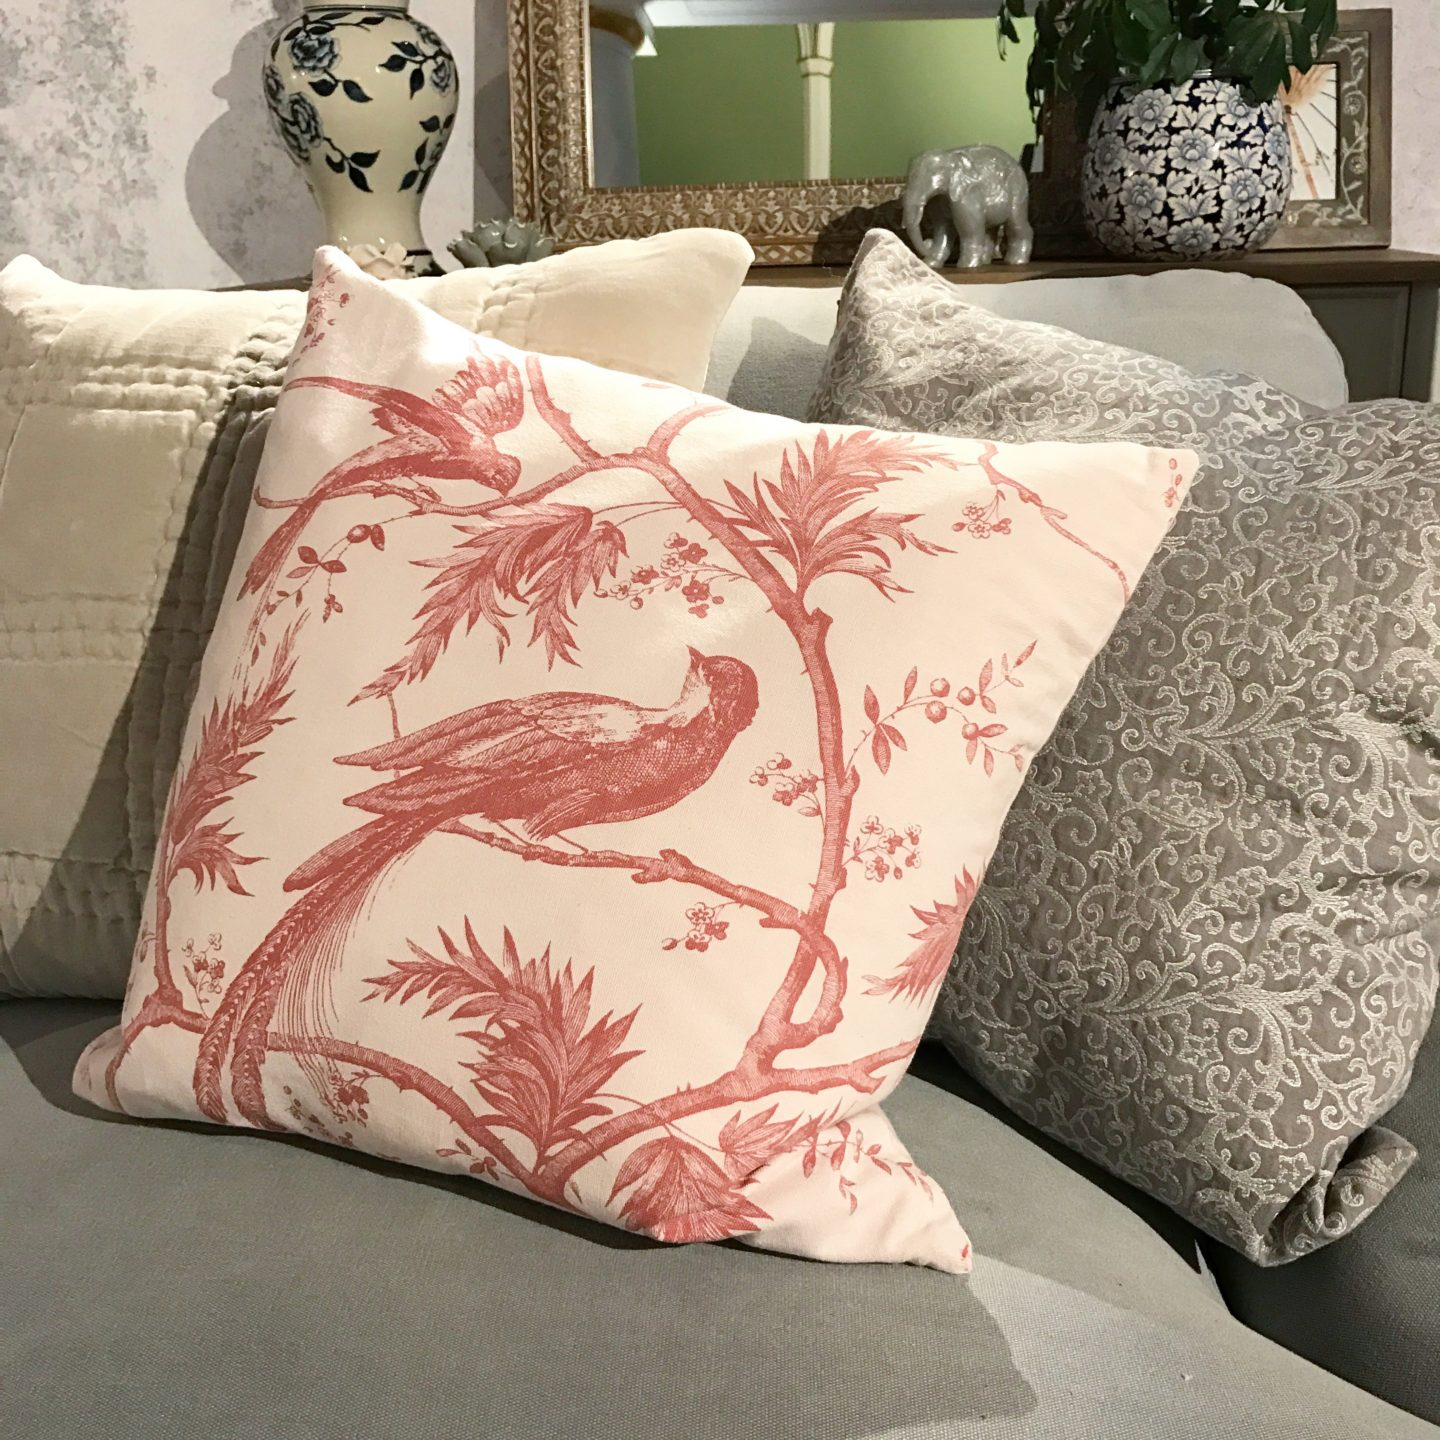 House of Fraser Junipa Deshi bird cushion